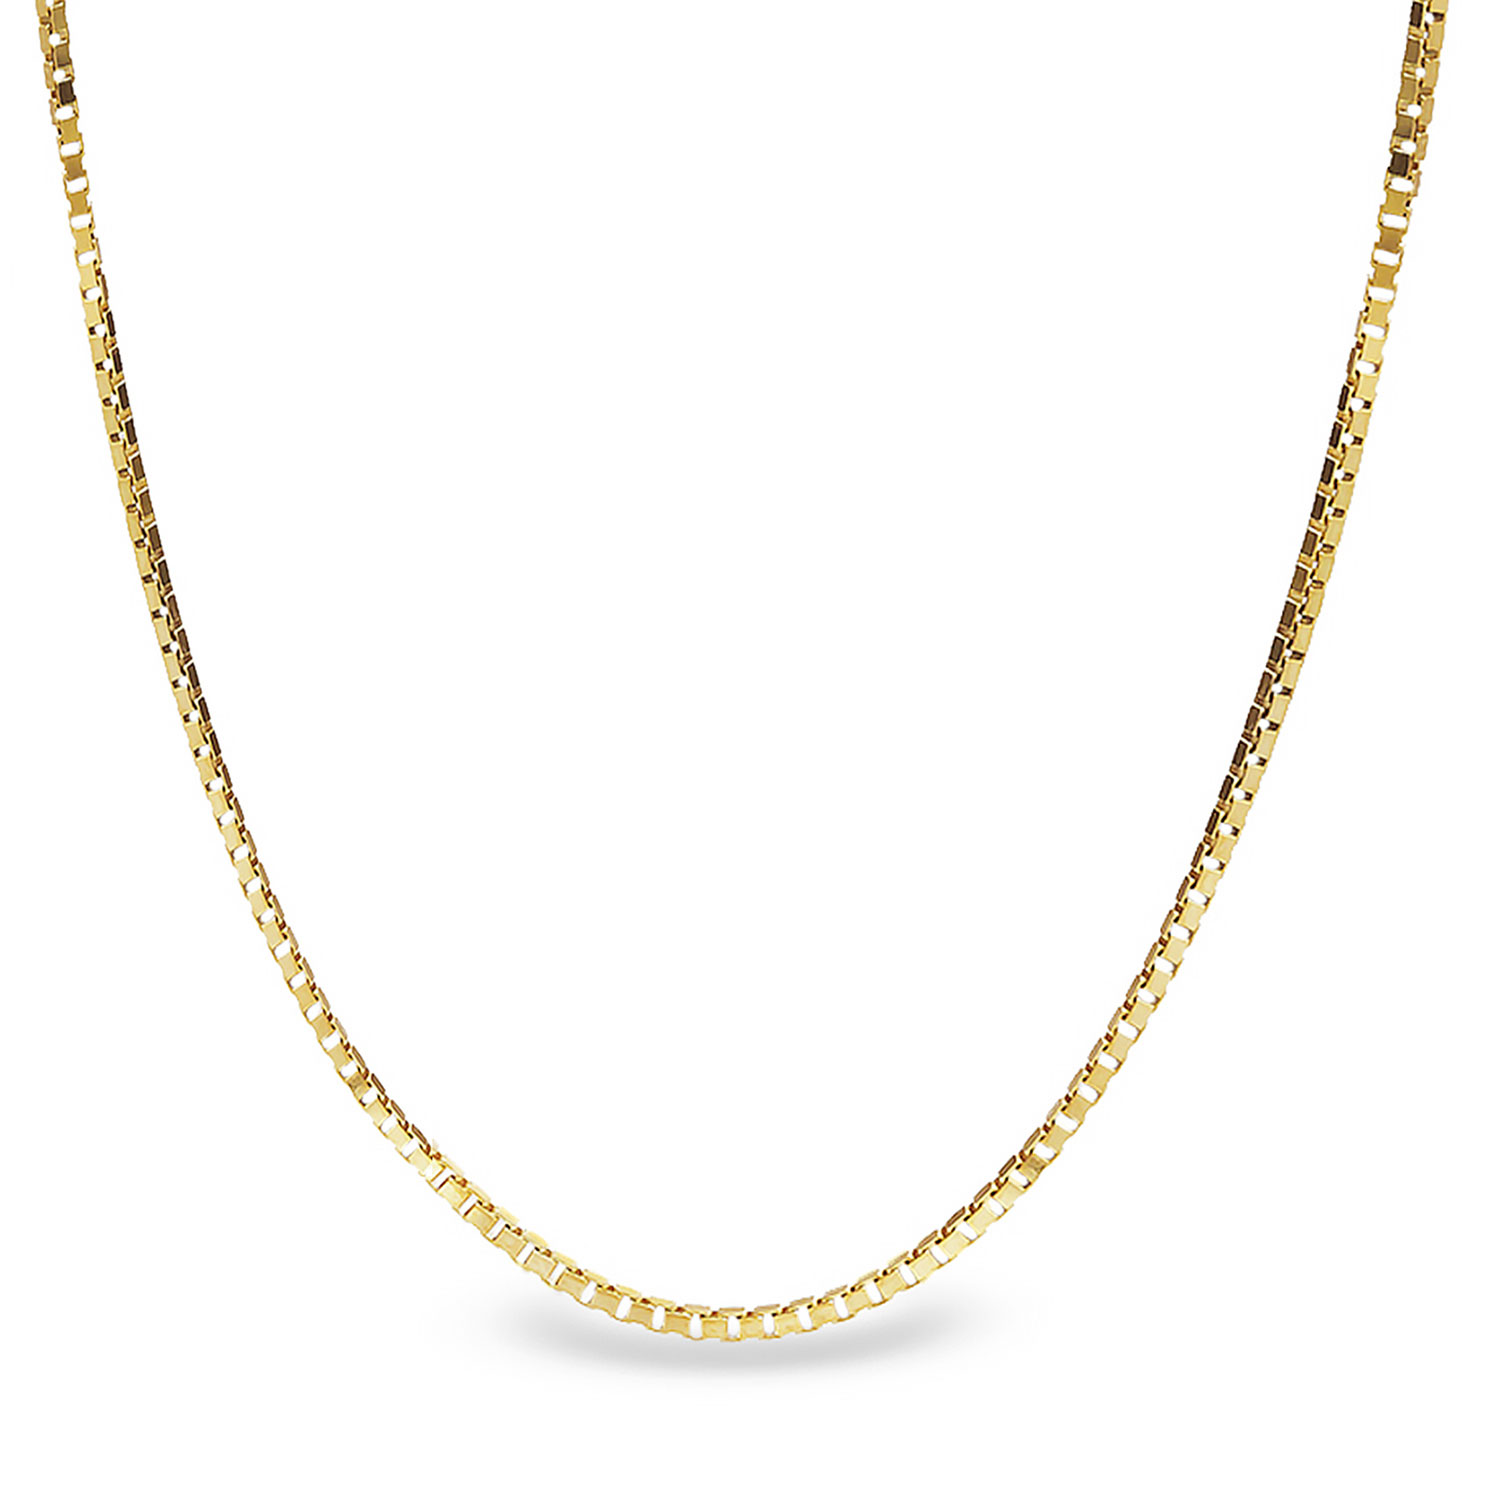 Box Chain 14k Gold Necklace - 20 in.